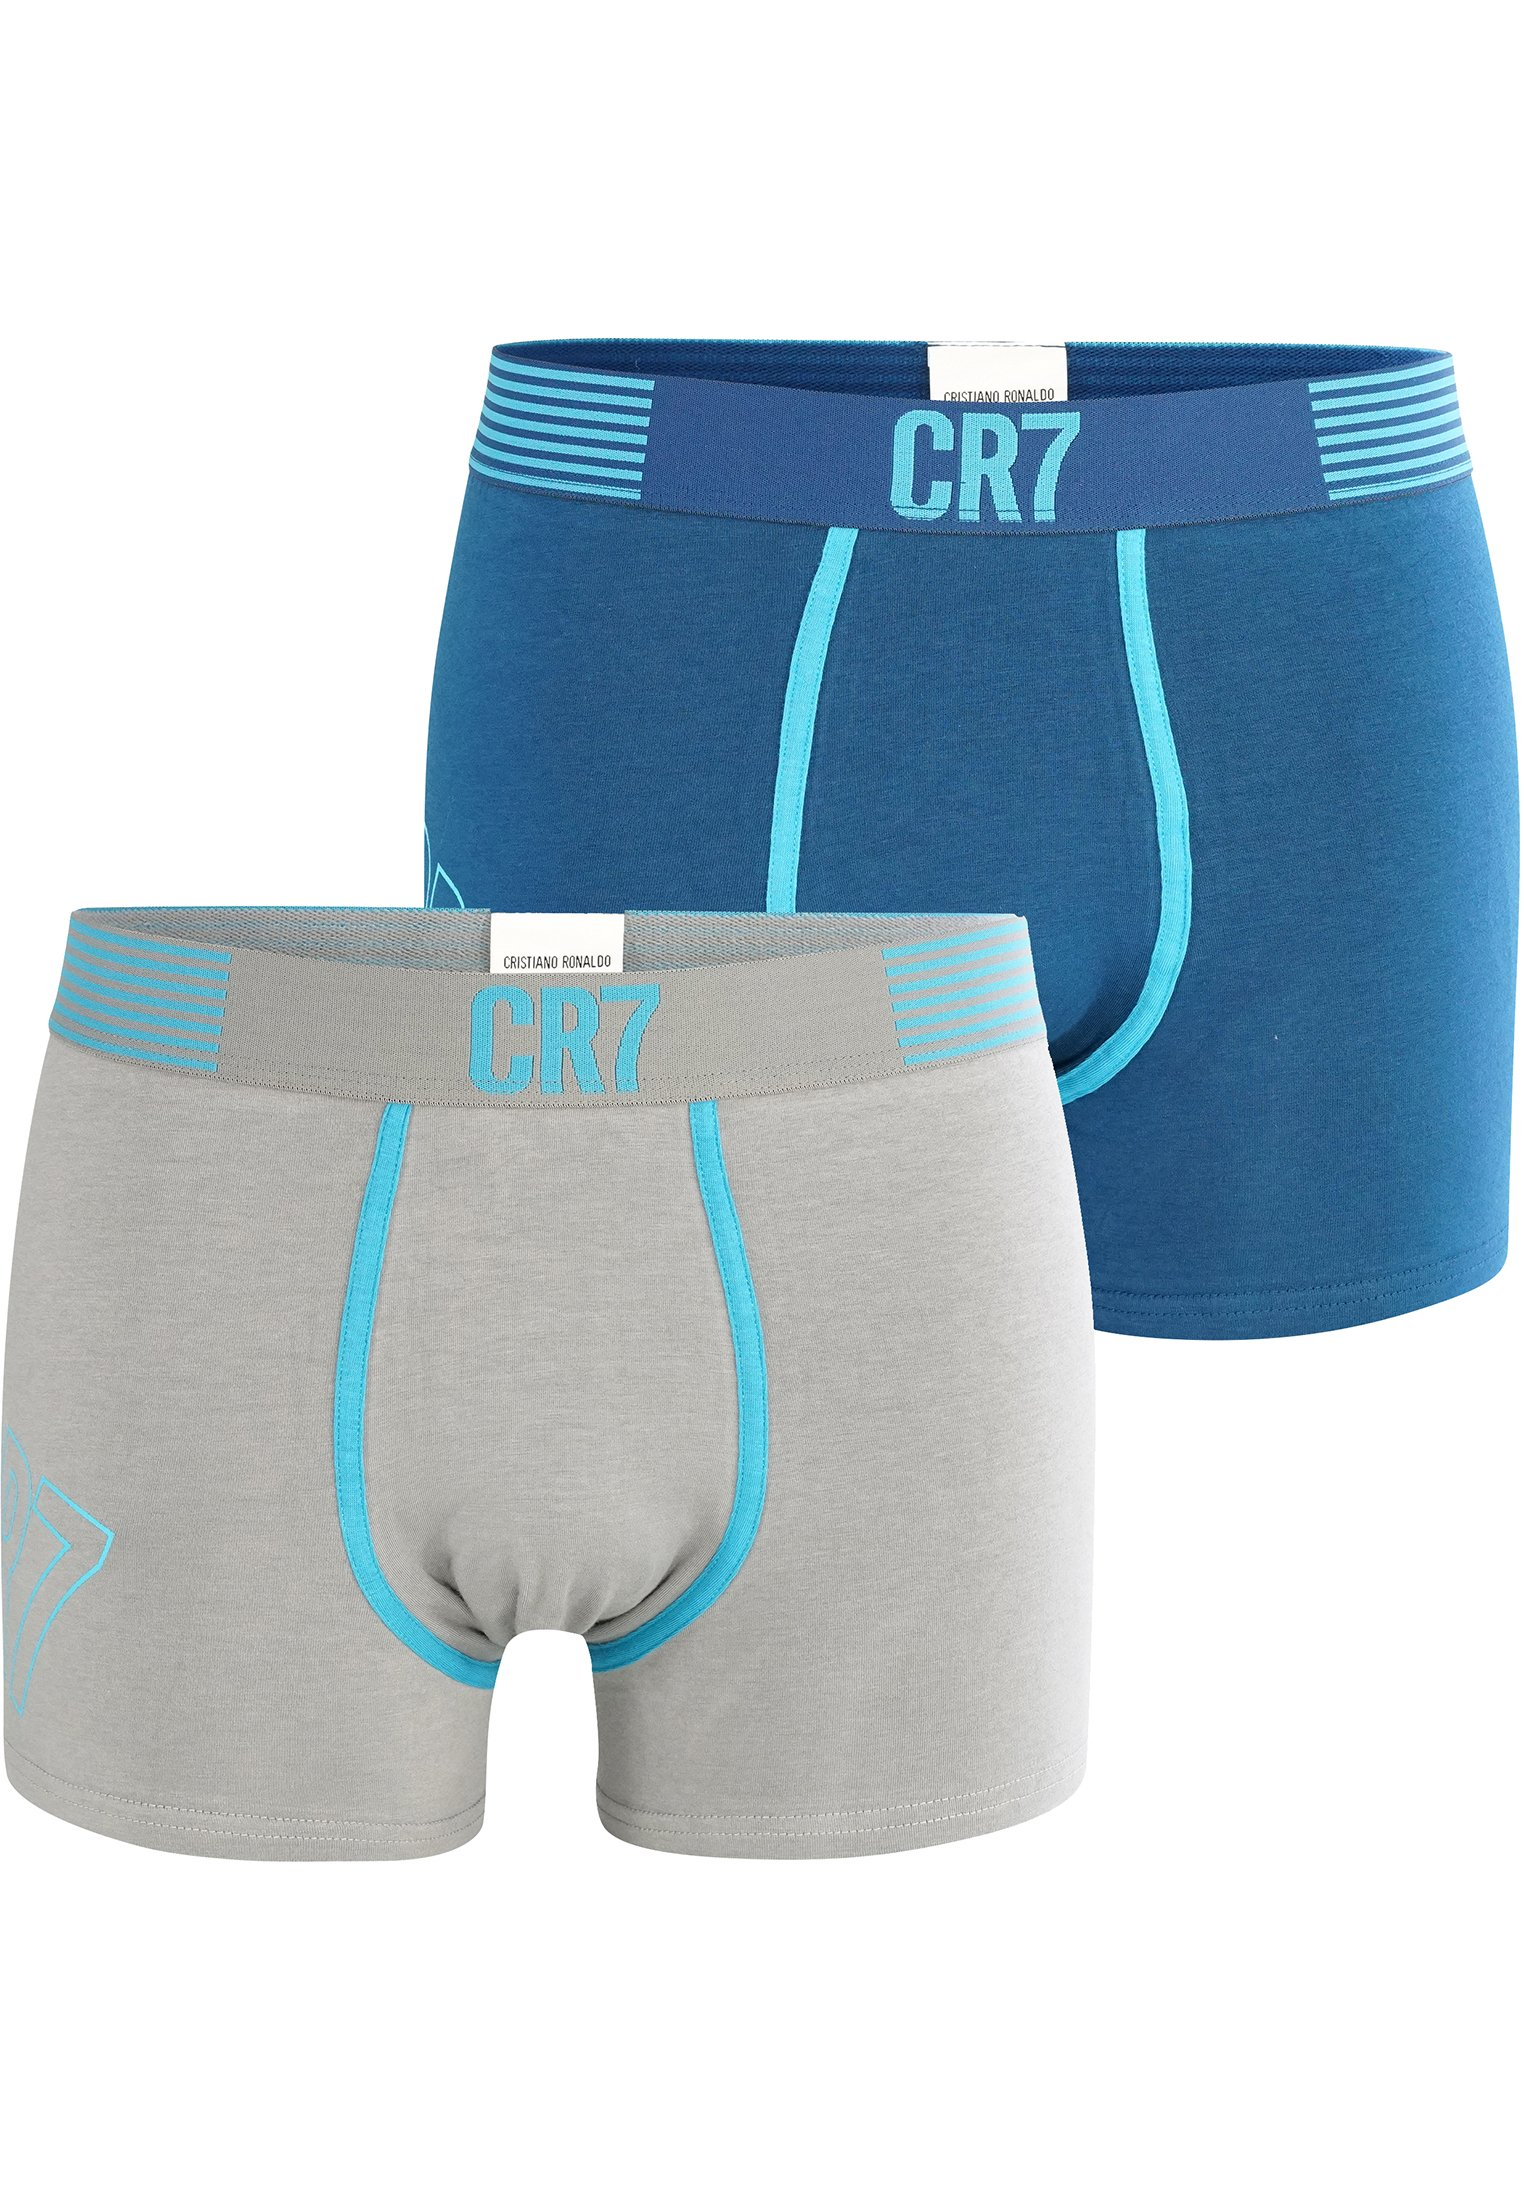 Homme CR7 FASHION 2-Pack - Shorty